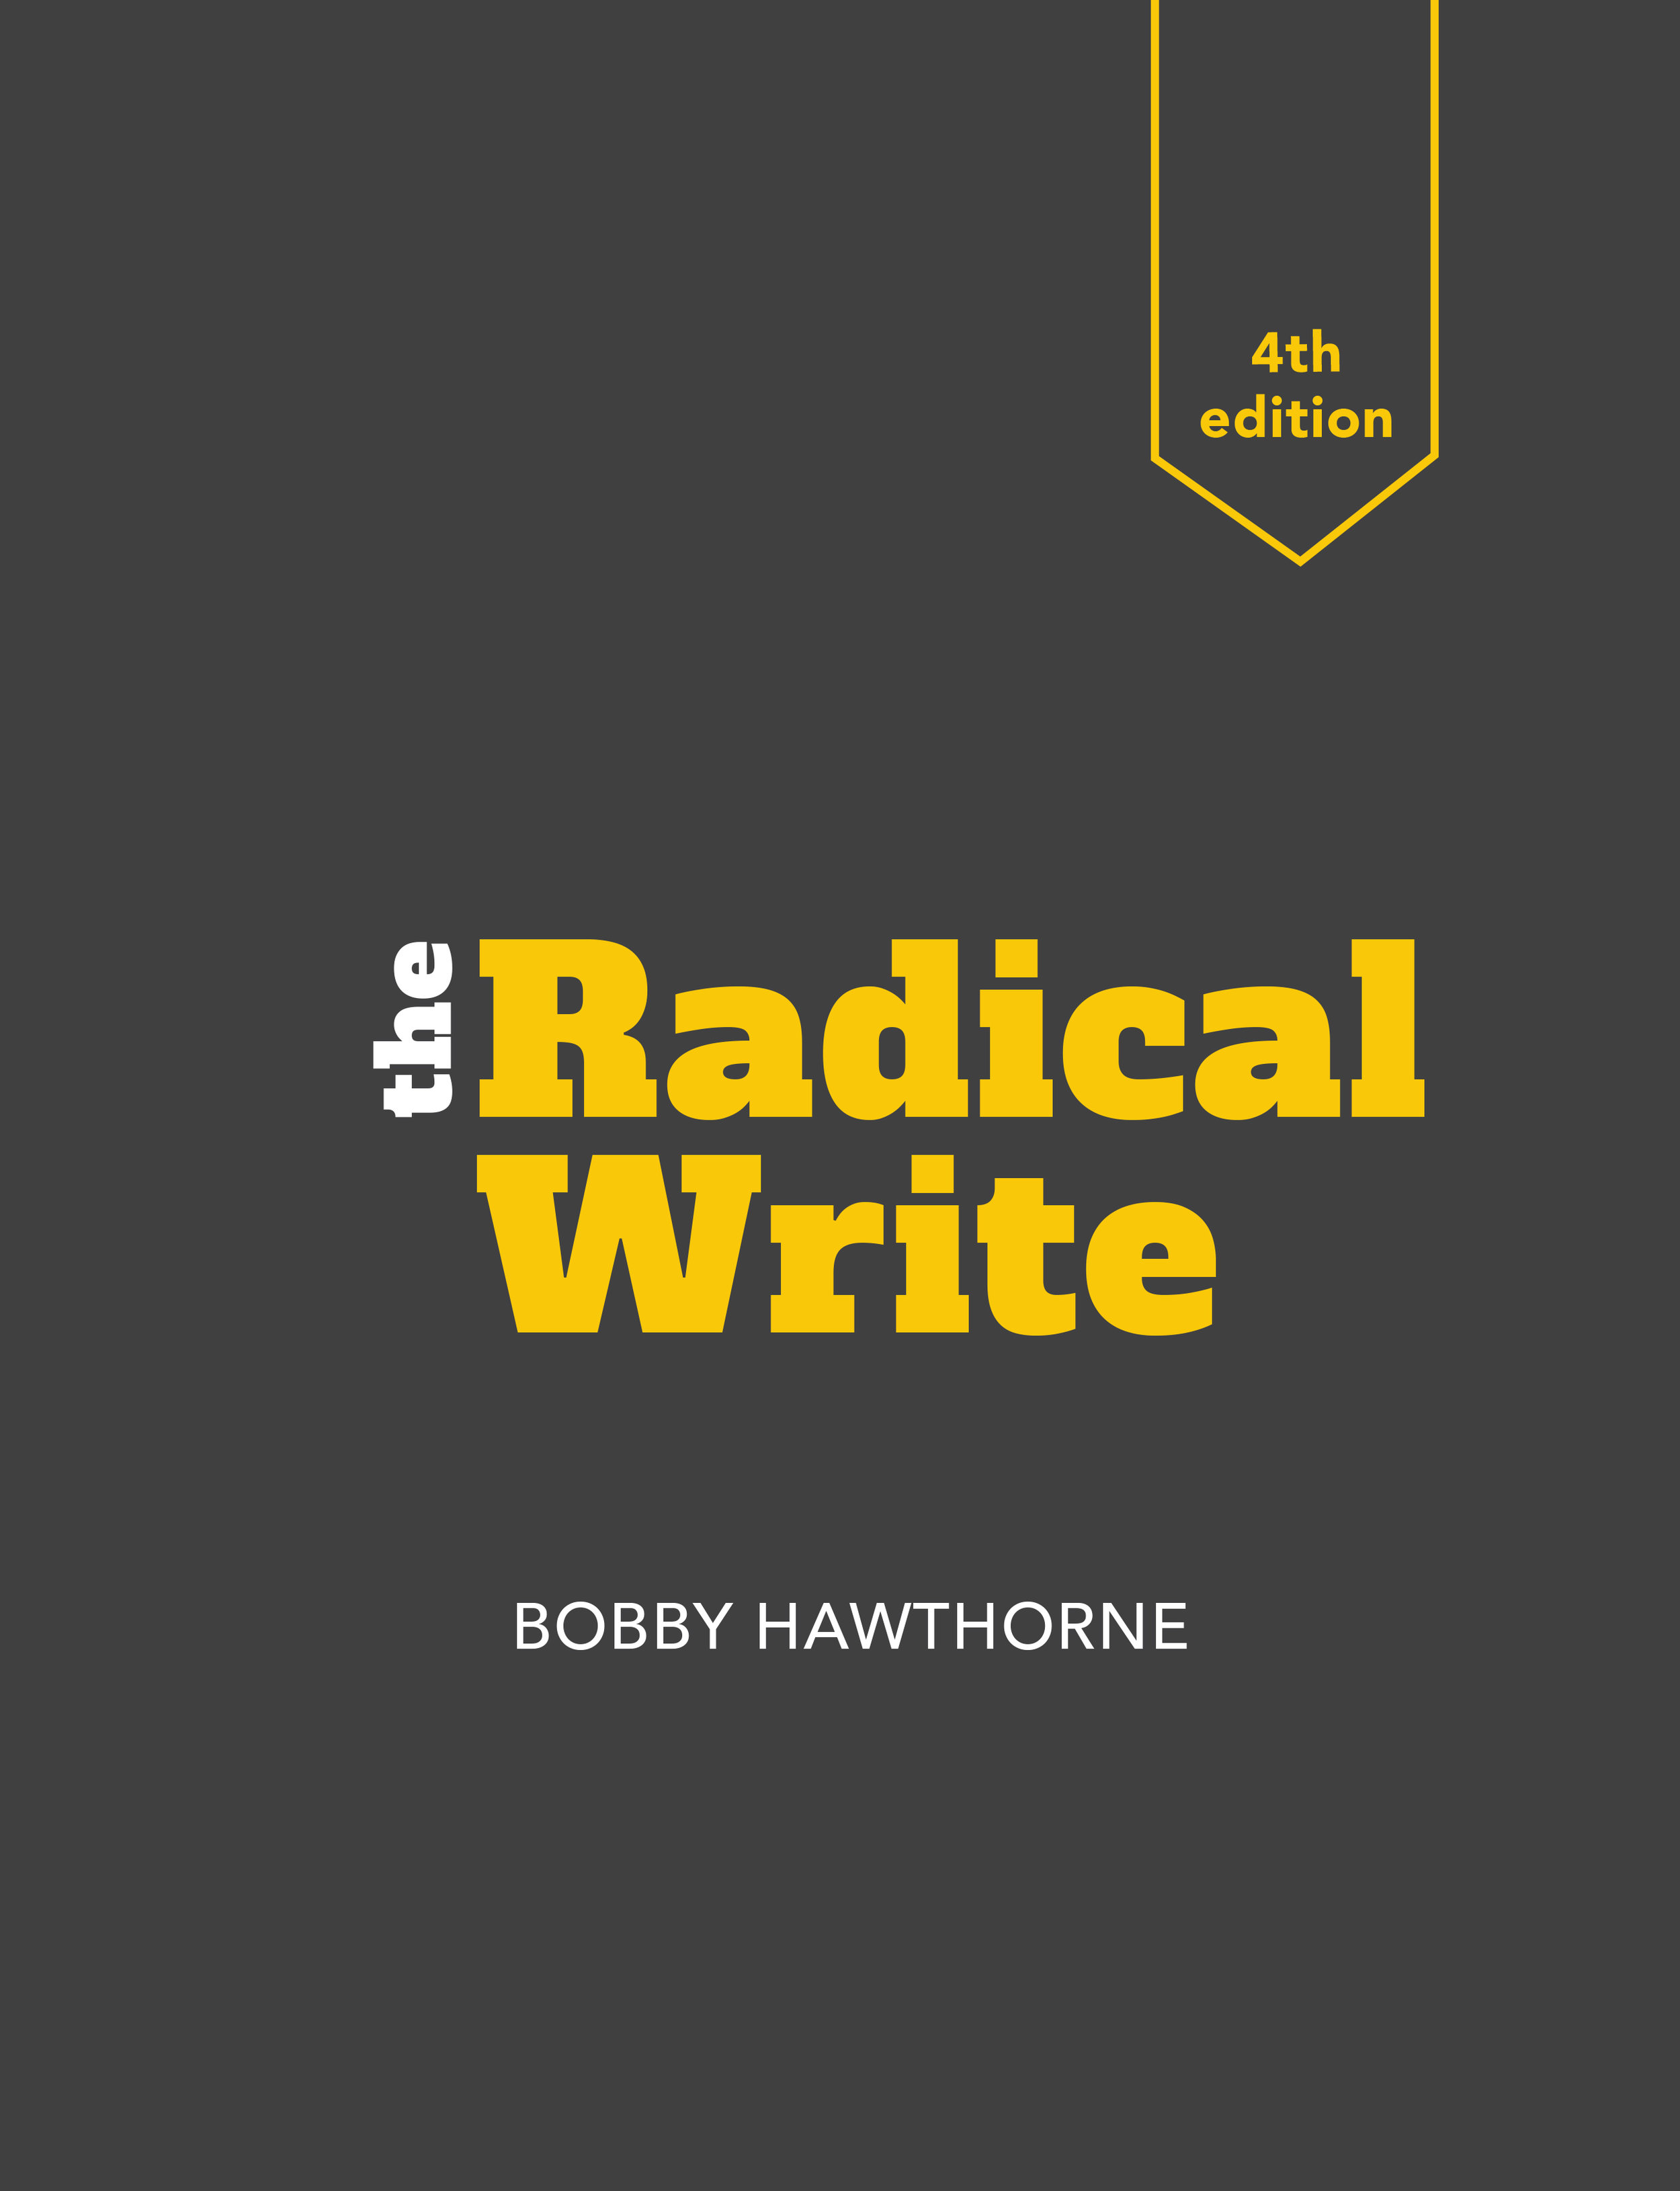 Order The Radical Write - The Radical Write [item #2087] is available for purchase by schools working with any yearbook company. To order, call 1.800.972.5628 or email merch@jostens.com.Jostens customers may visit: Yearbook Avenue > Plan > Order supplies.